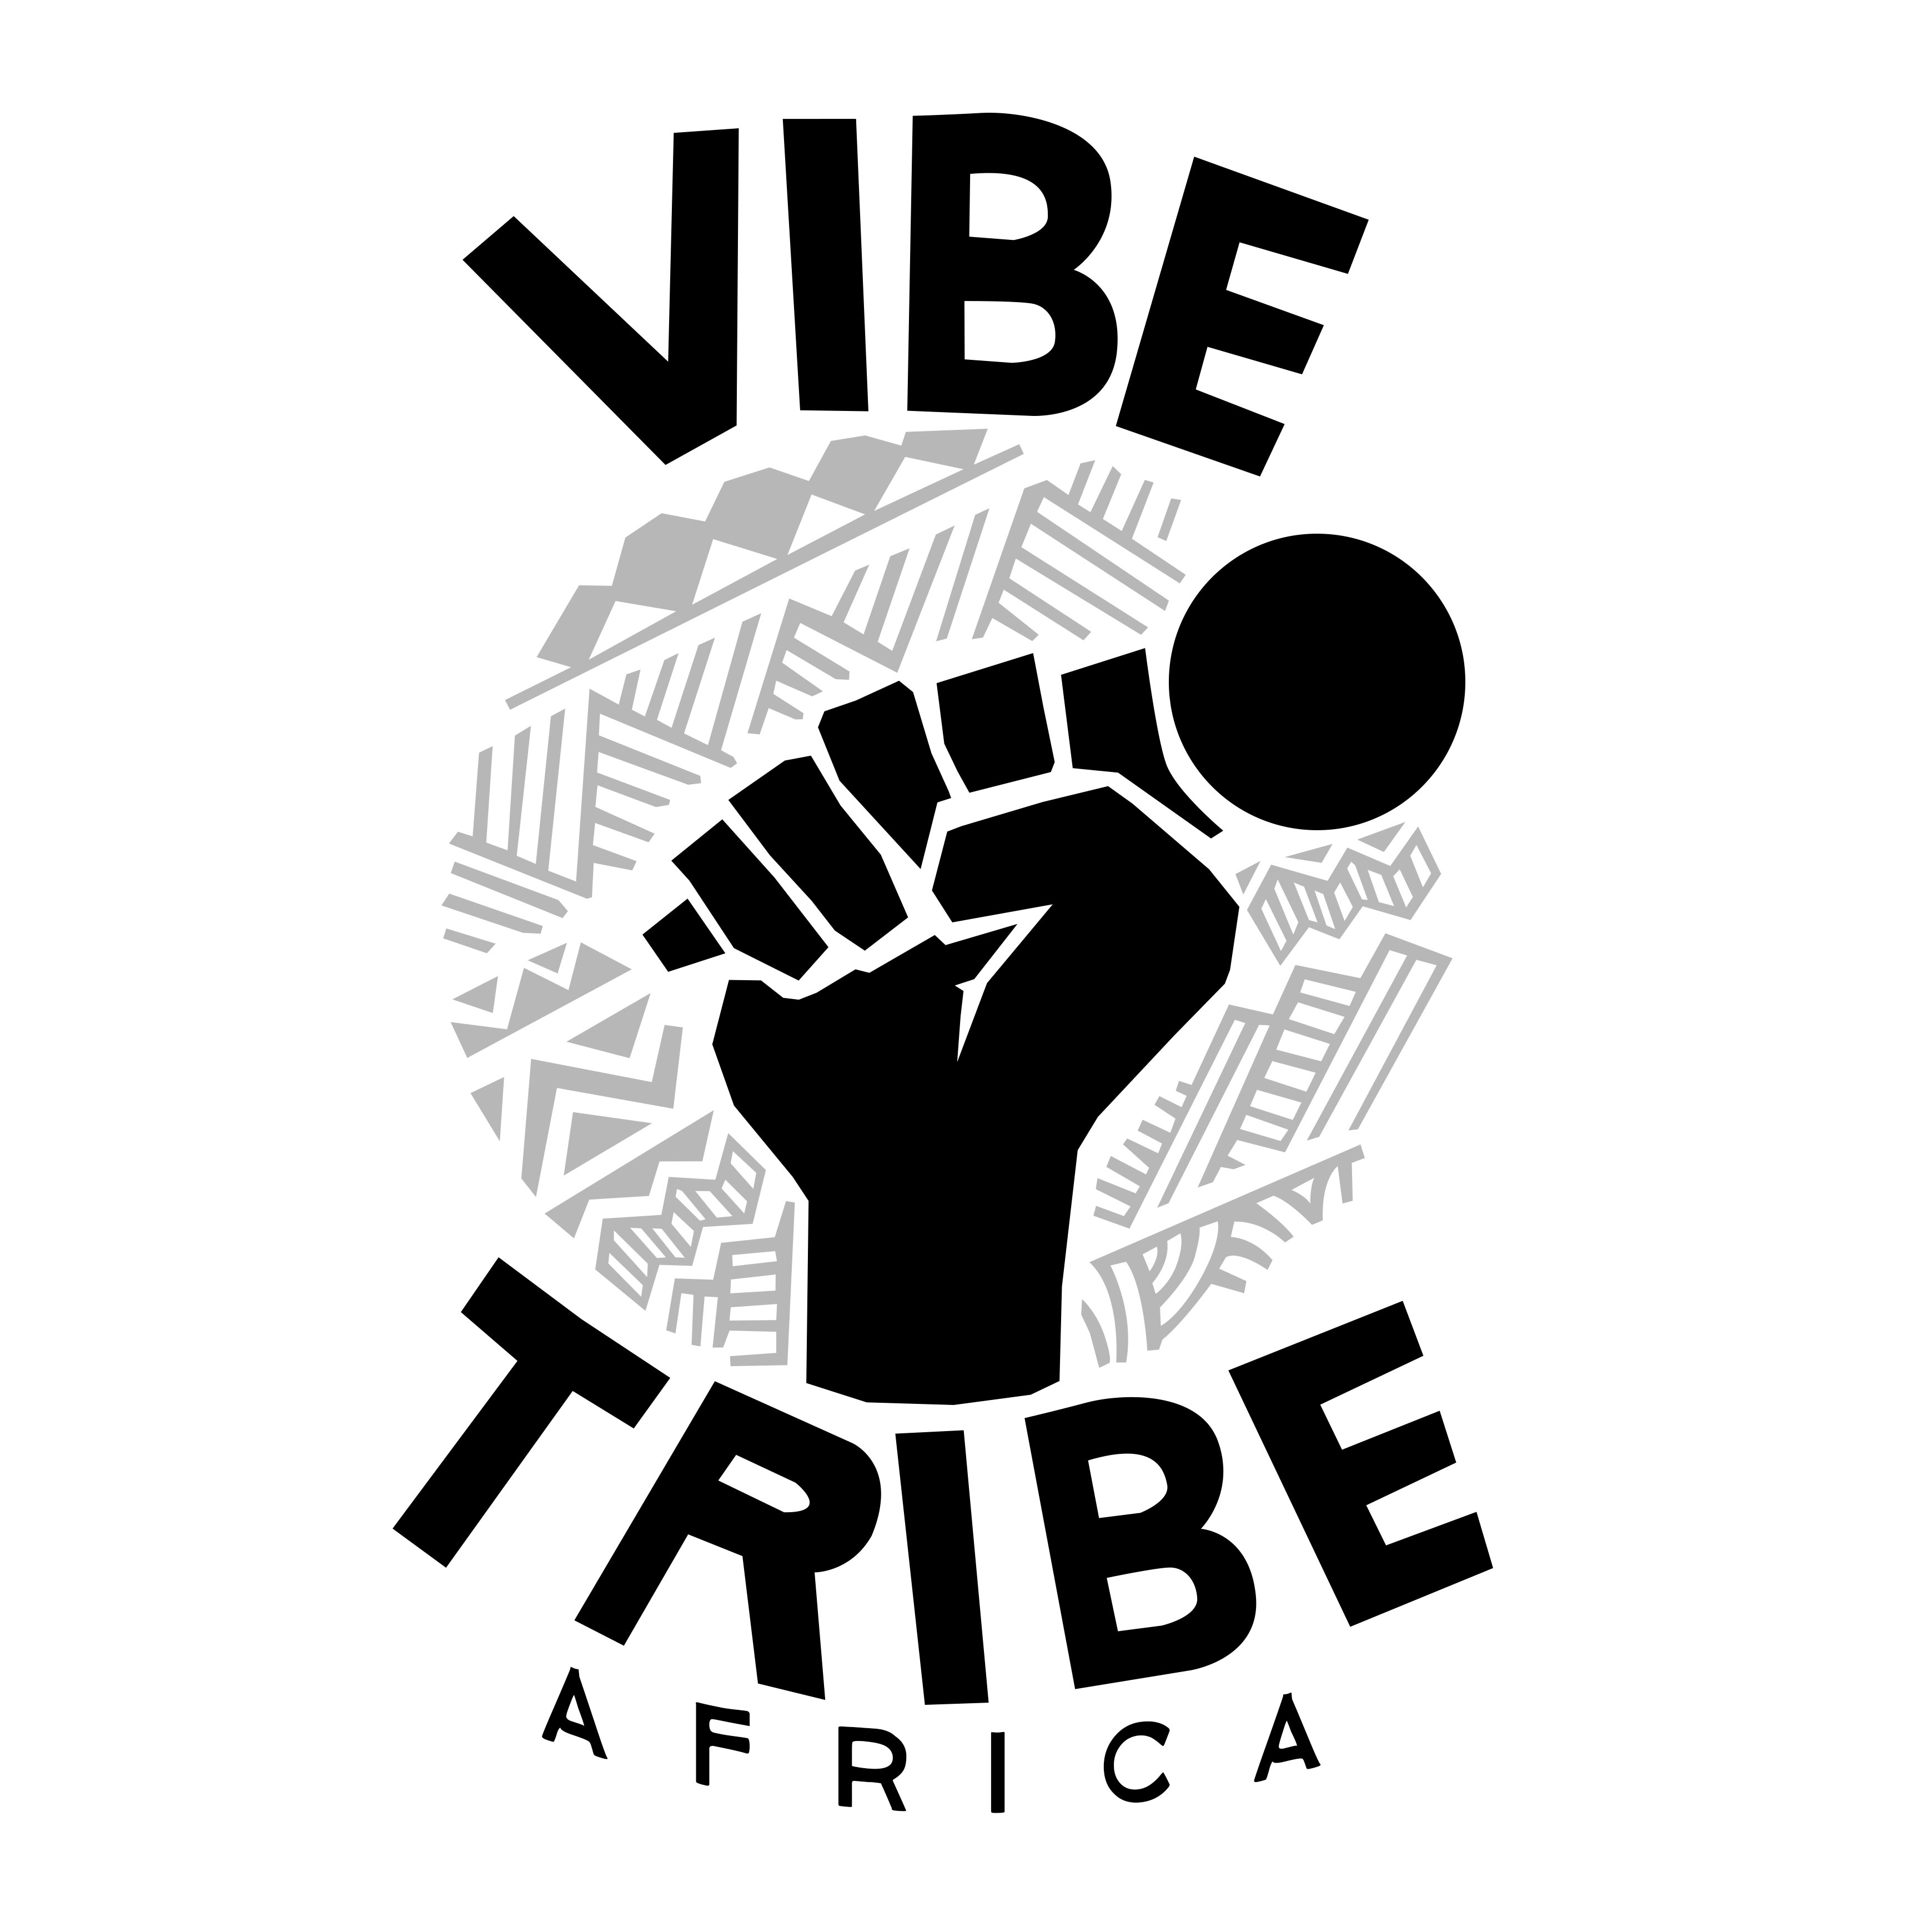 Vibe Tribe Africa logo in black and white